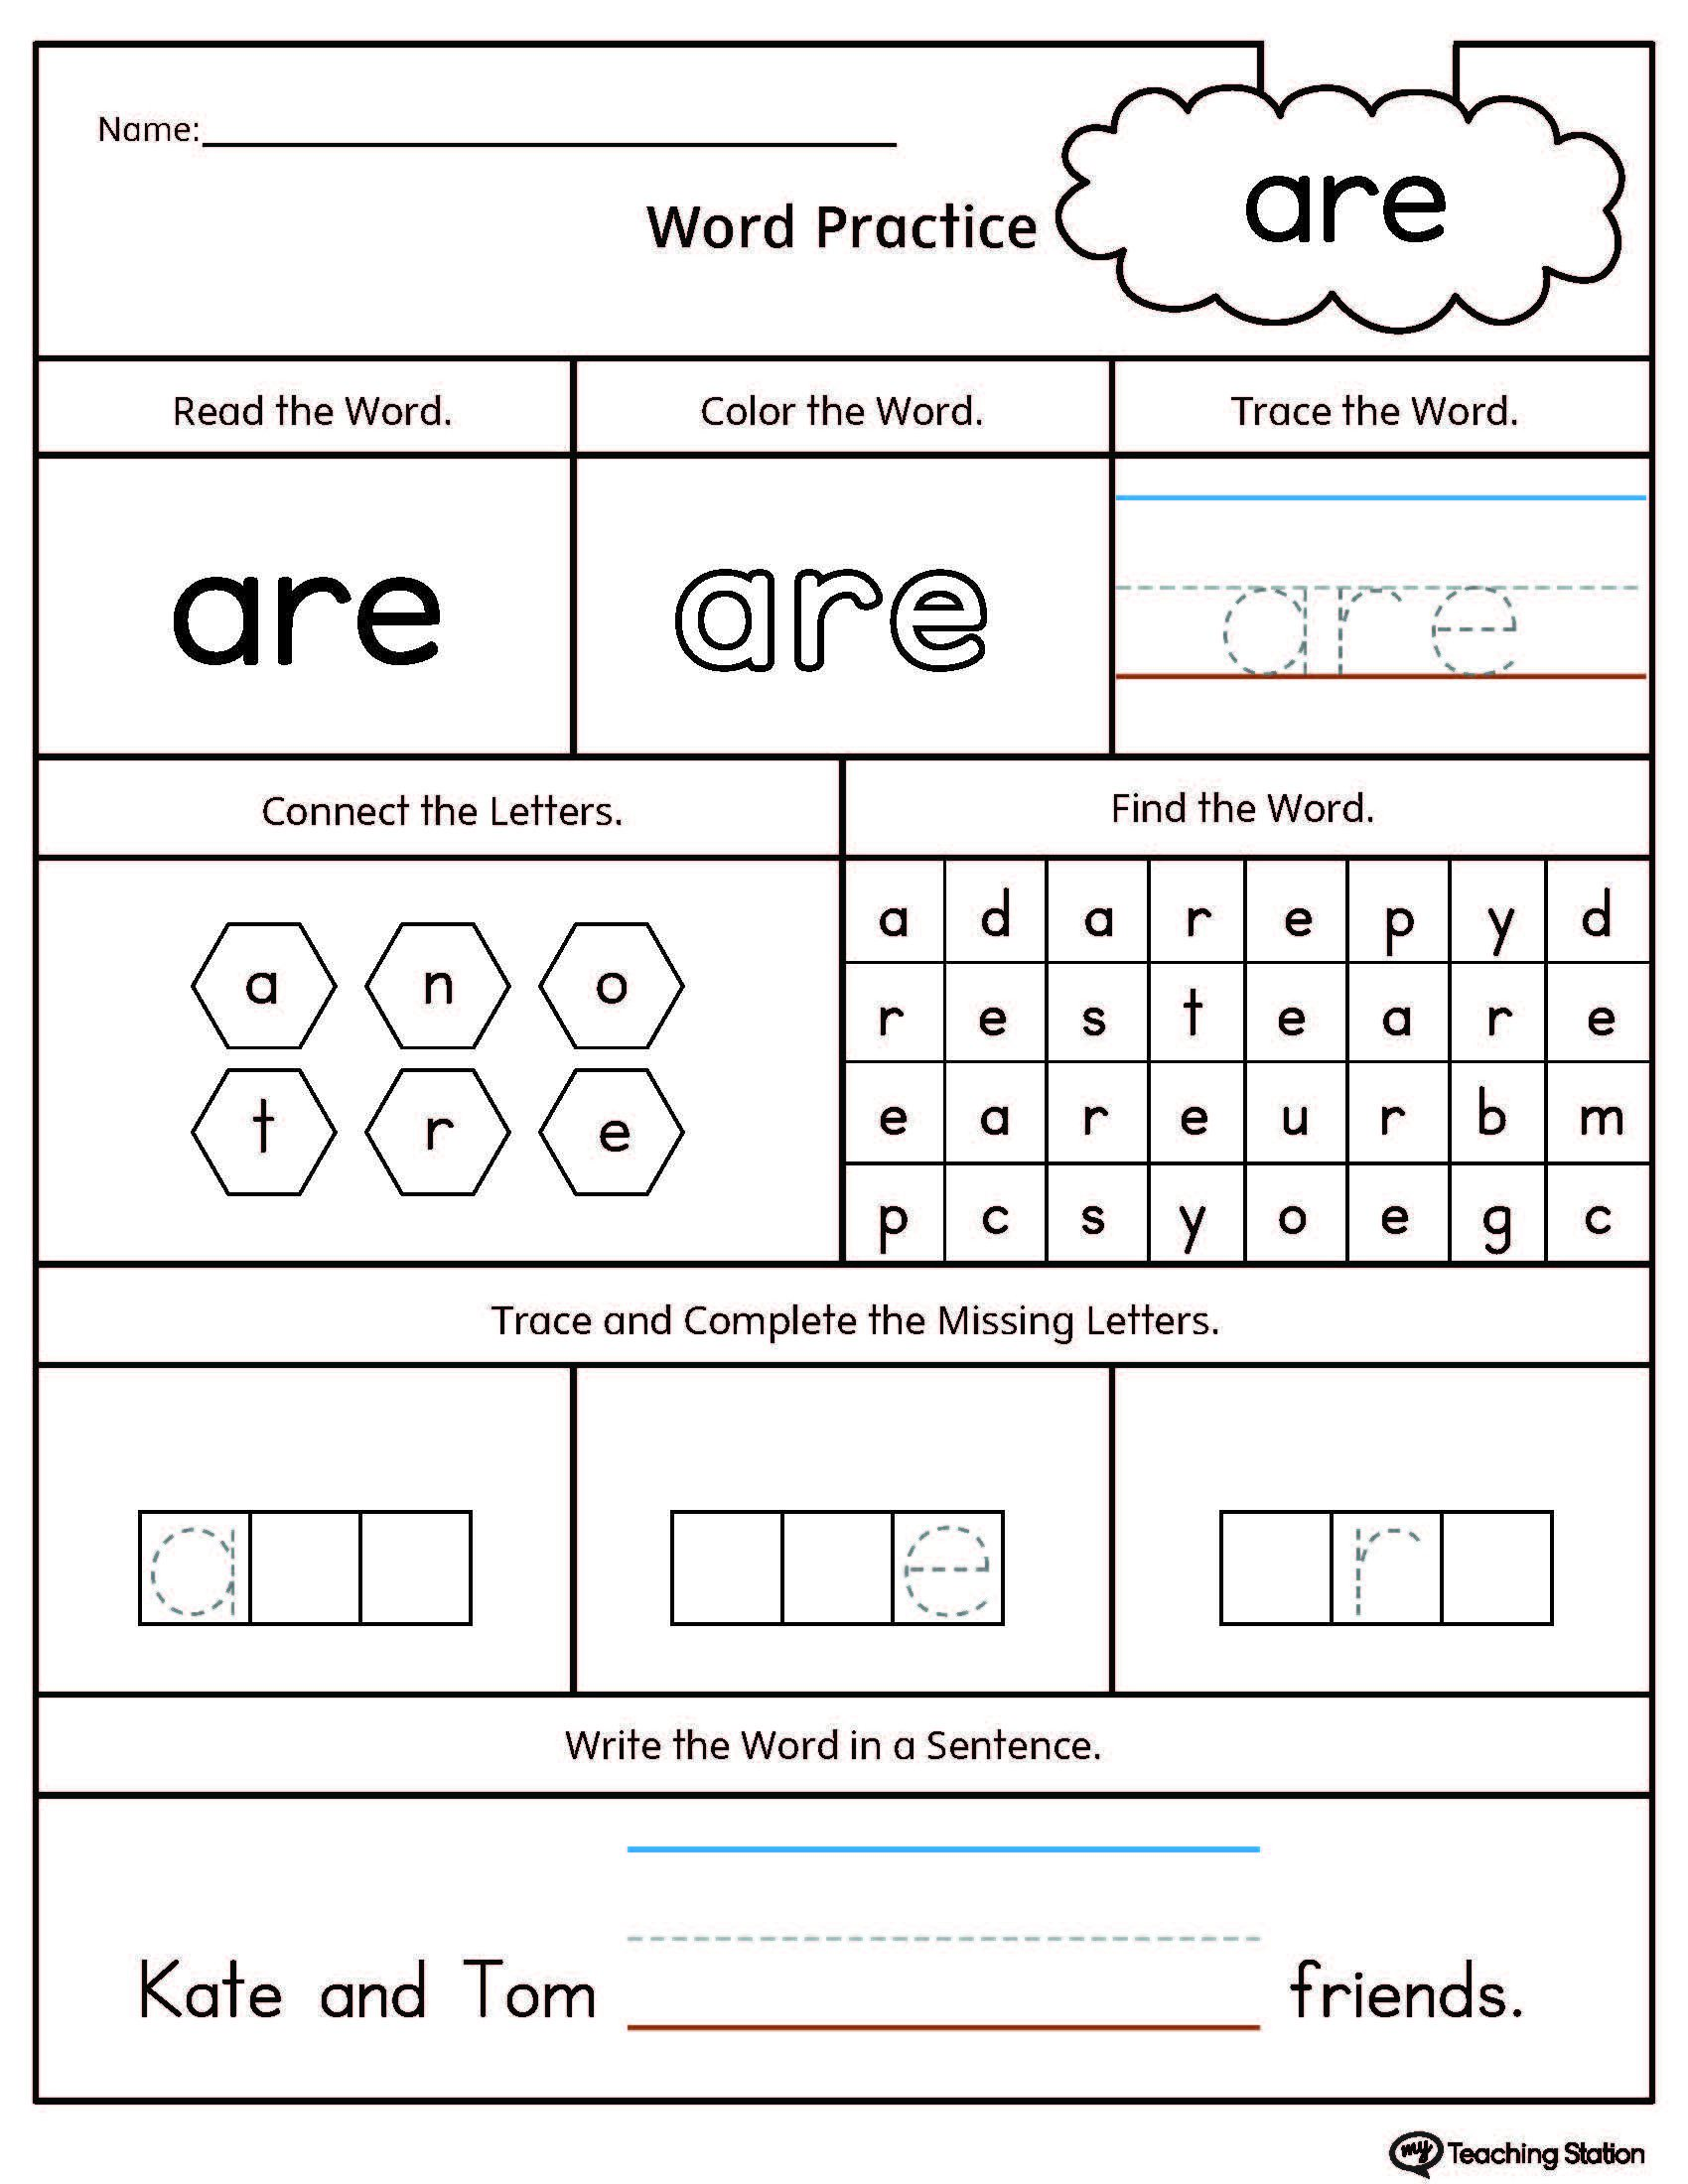 Ccvc Words Worksheets Kindergarten High Frequency Word are Printable Worksheet